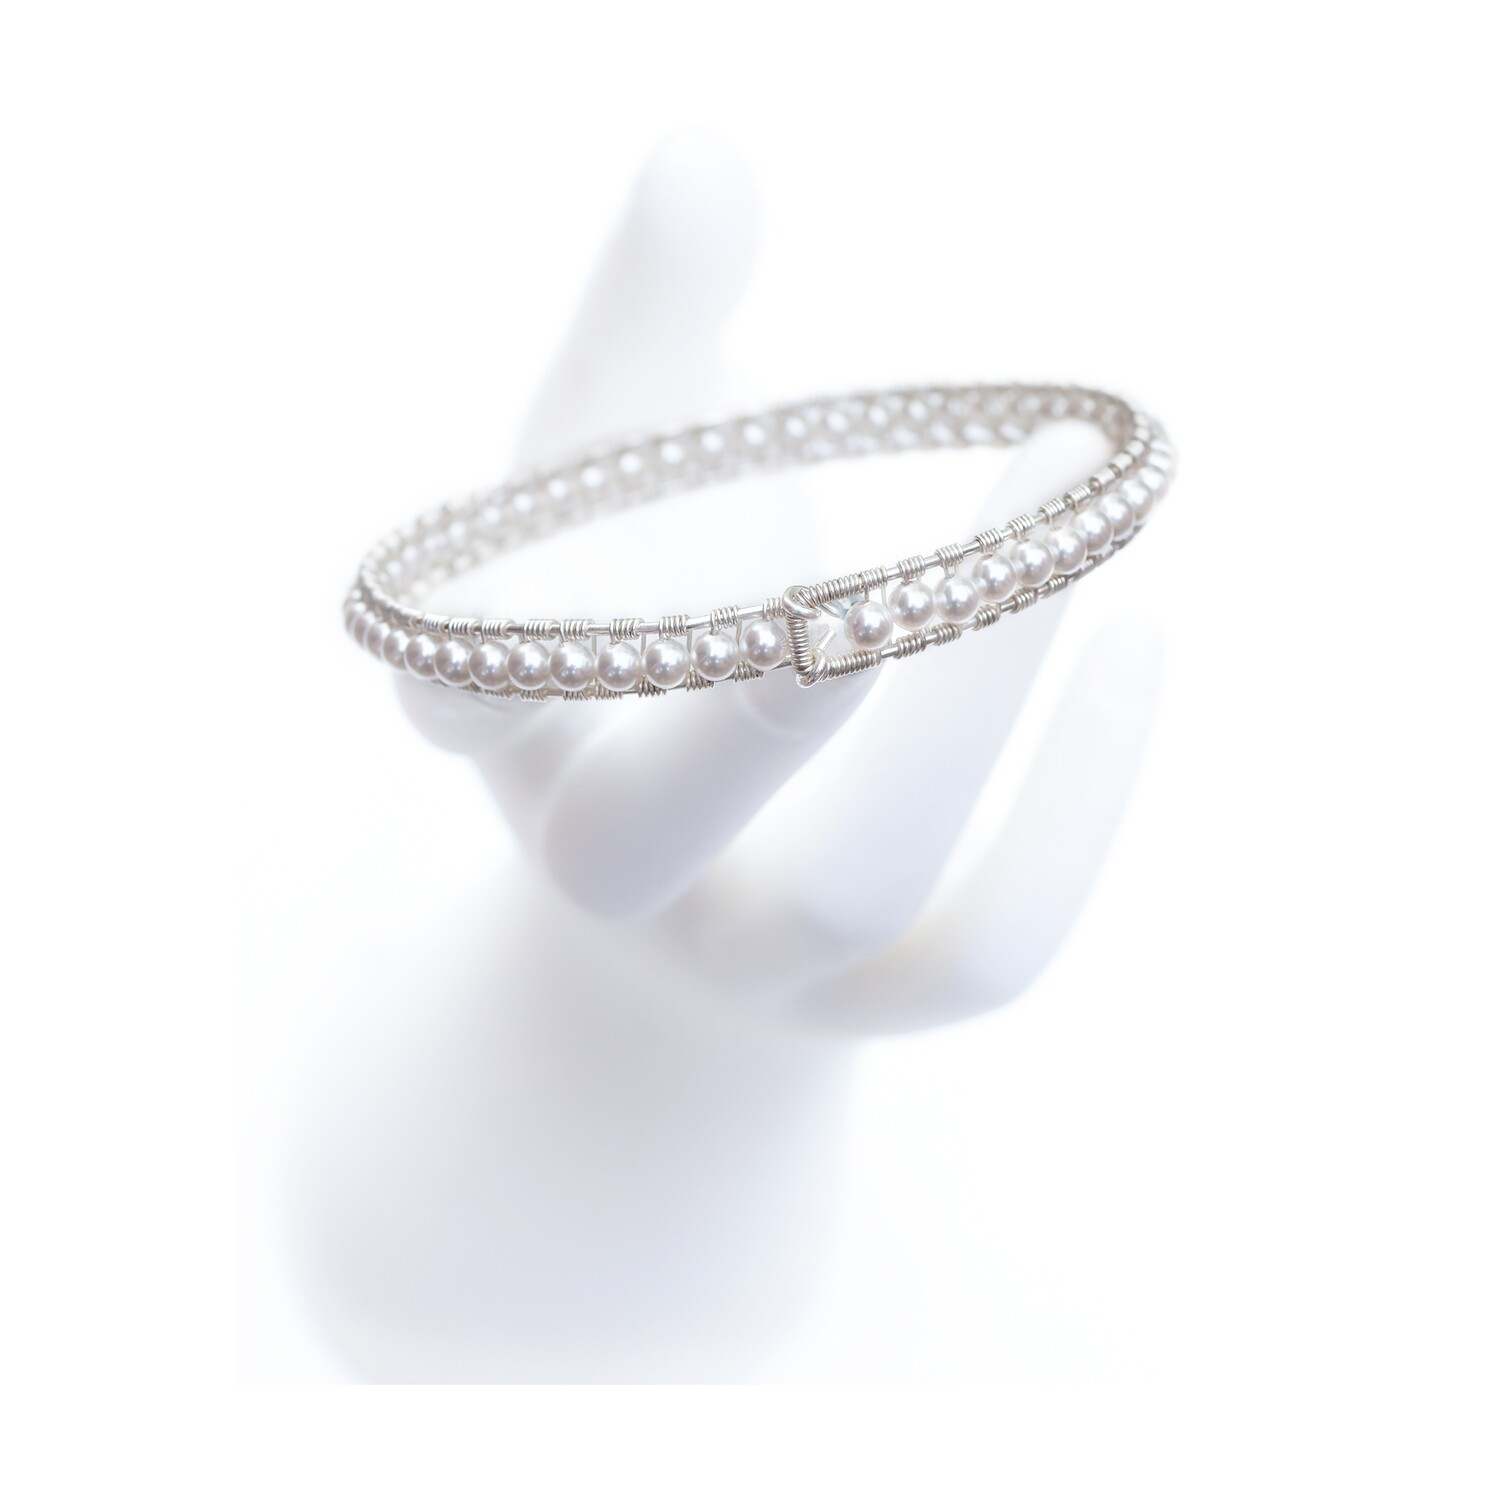 MANIA Jewels Girdle Bangle Swarovski White Pearl and Sterling Silver